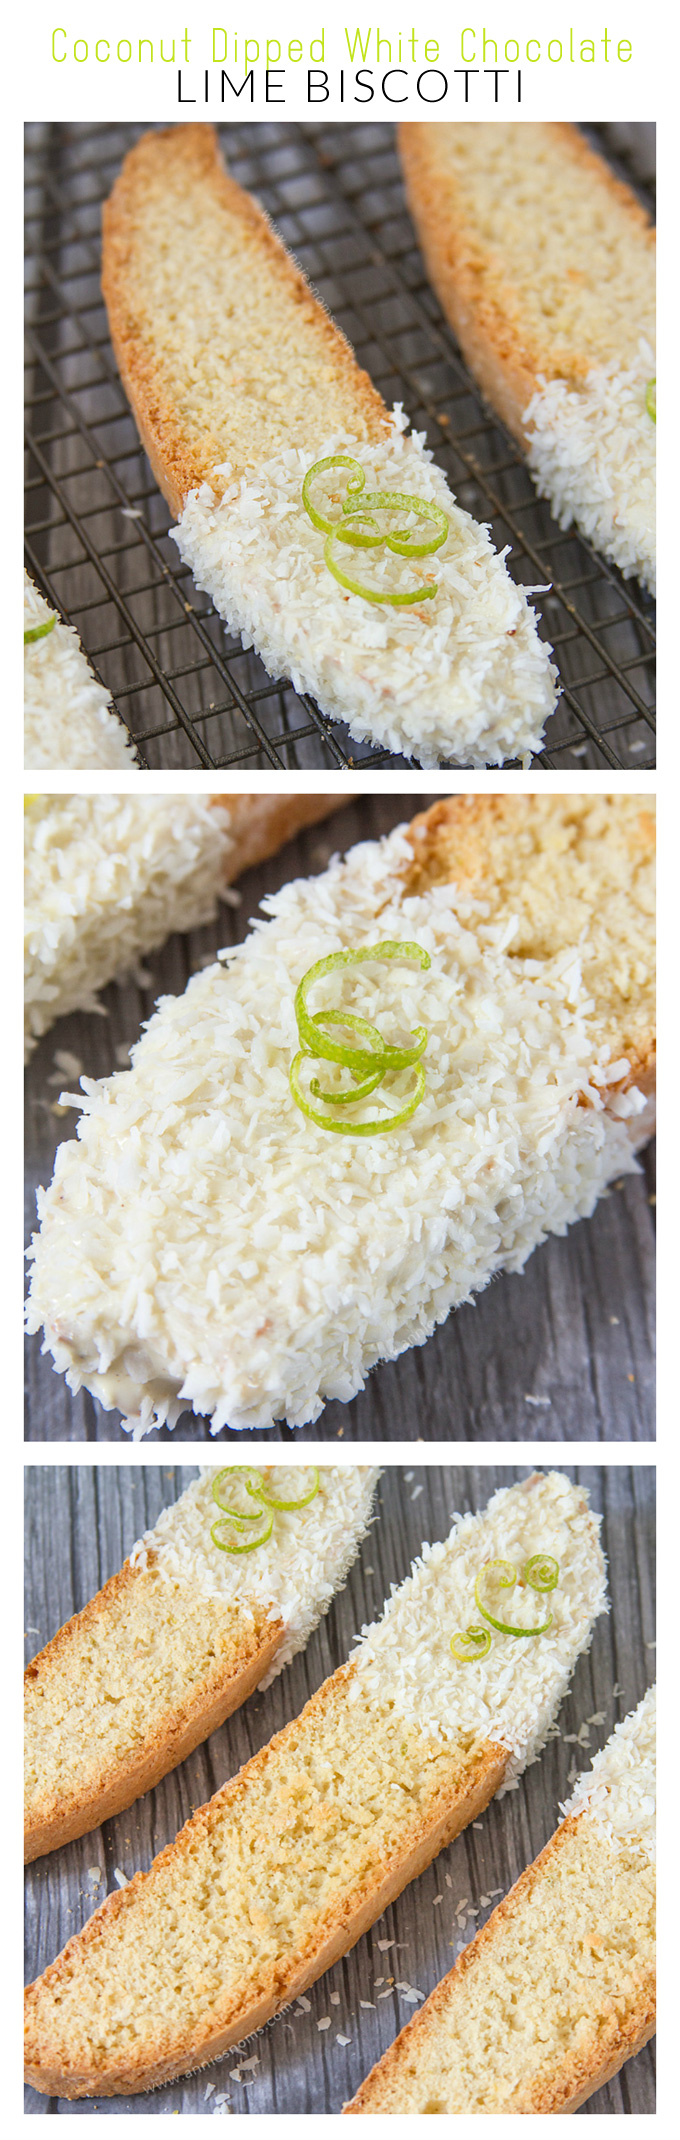 Coconut Dipped White Chocolate Lime Biscotti | Annie's Noms